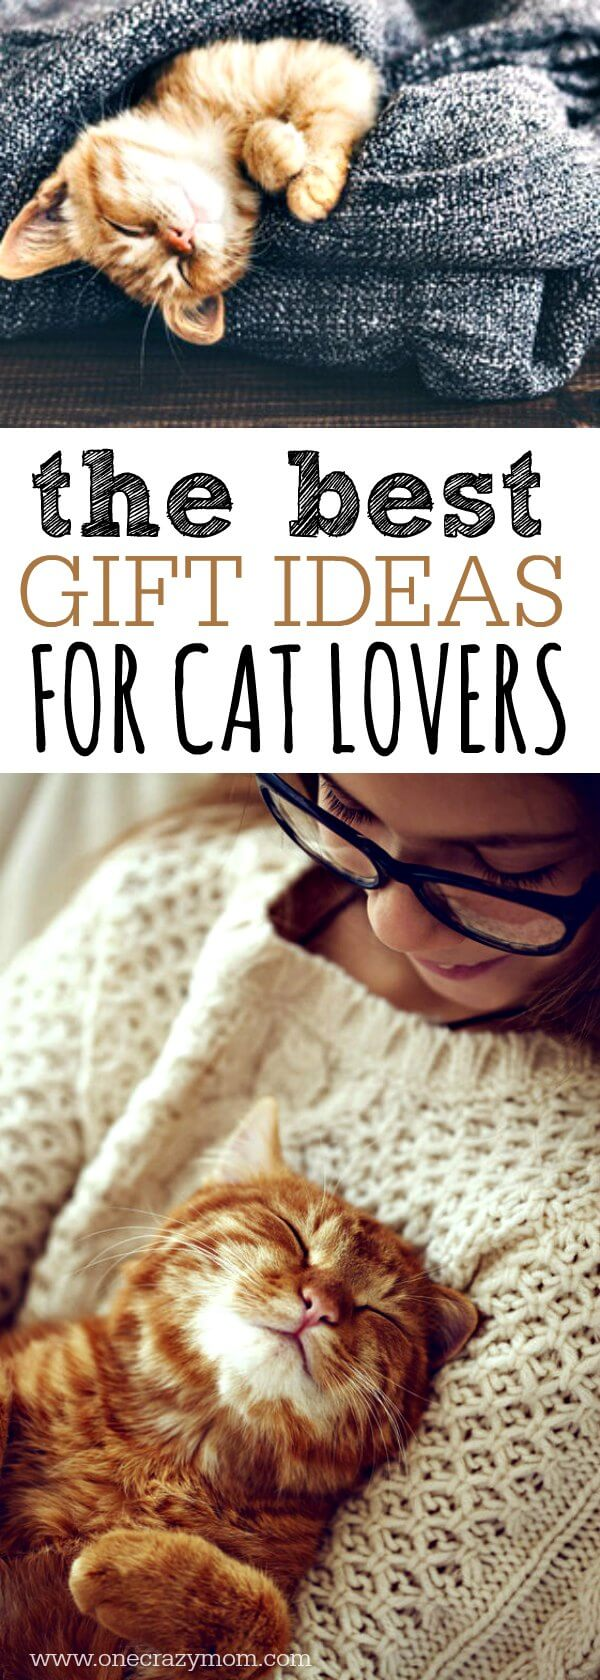 We have all of the best gifts for cat lovers. 20 unique gift ideas for cat lovers they will love! Find the best presents for cat lovers here!